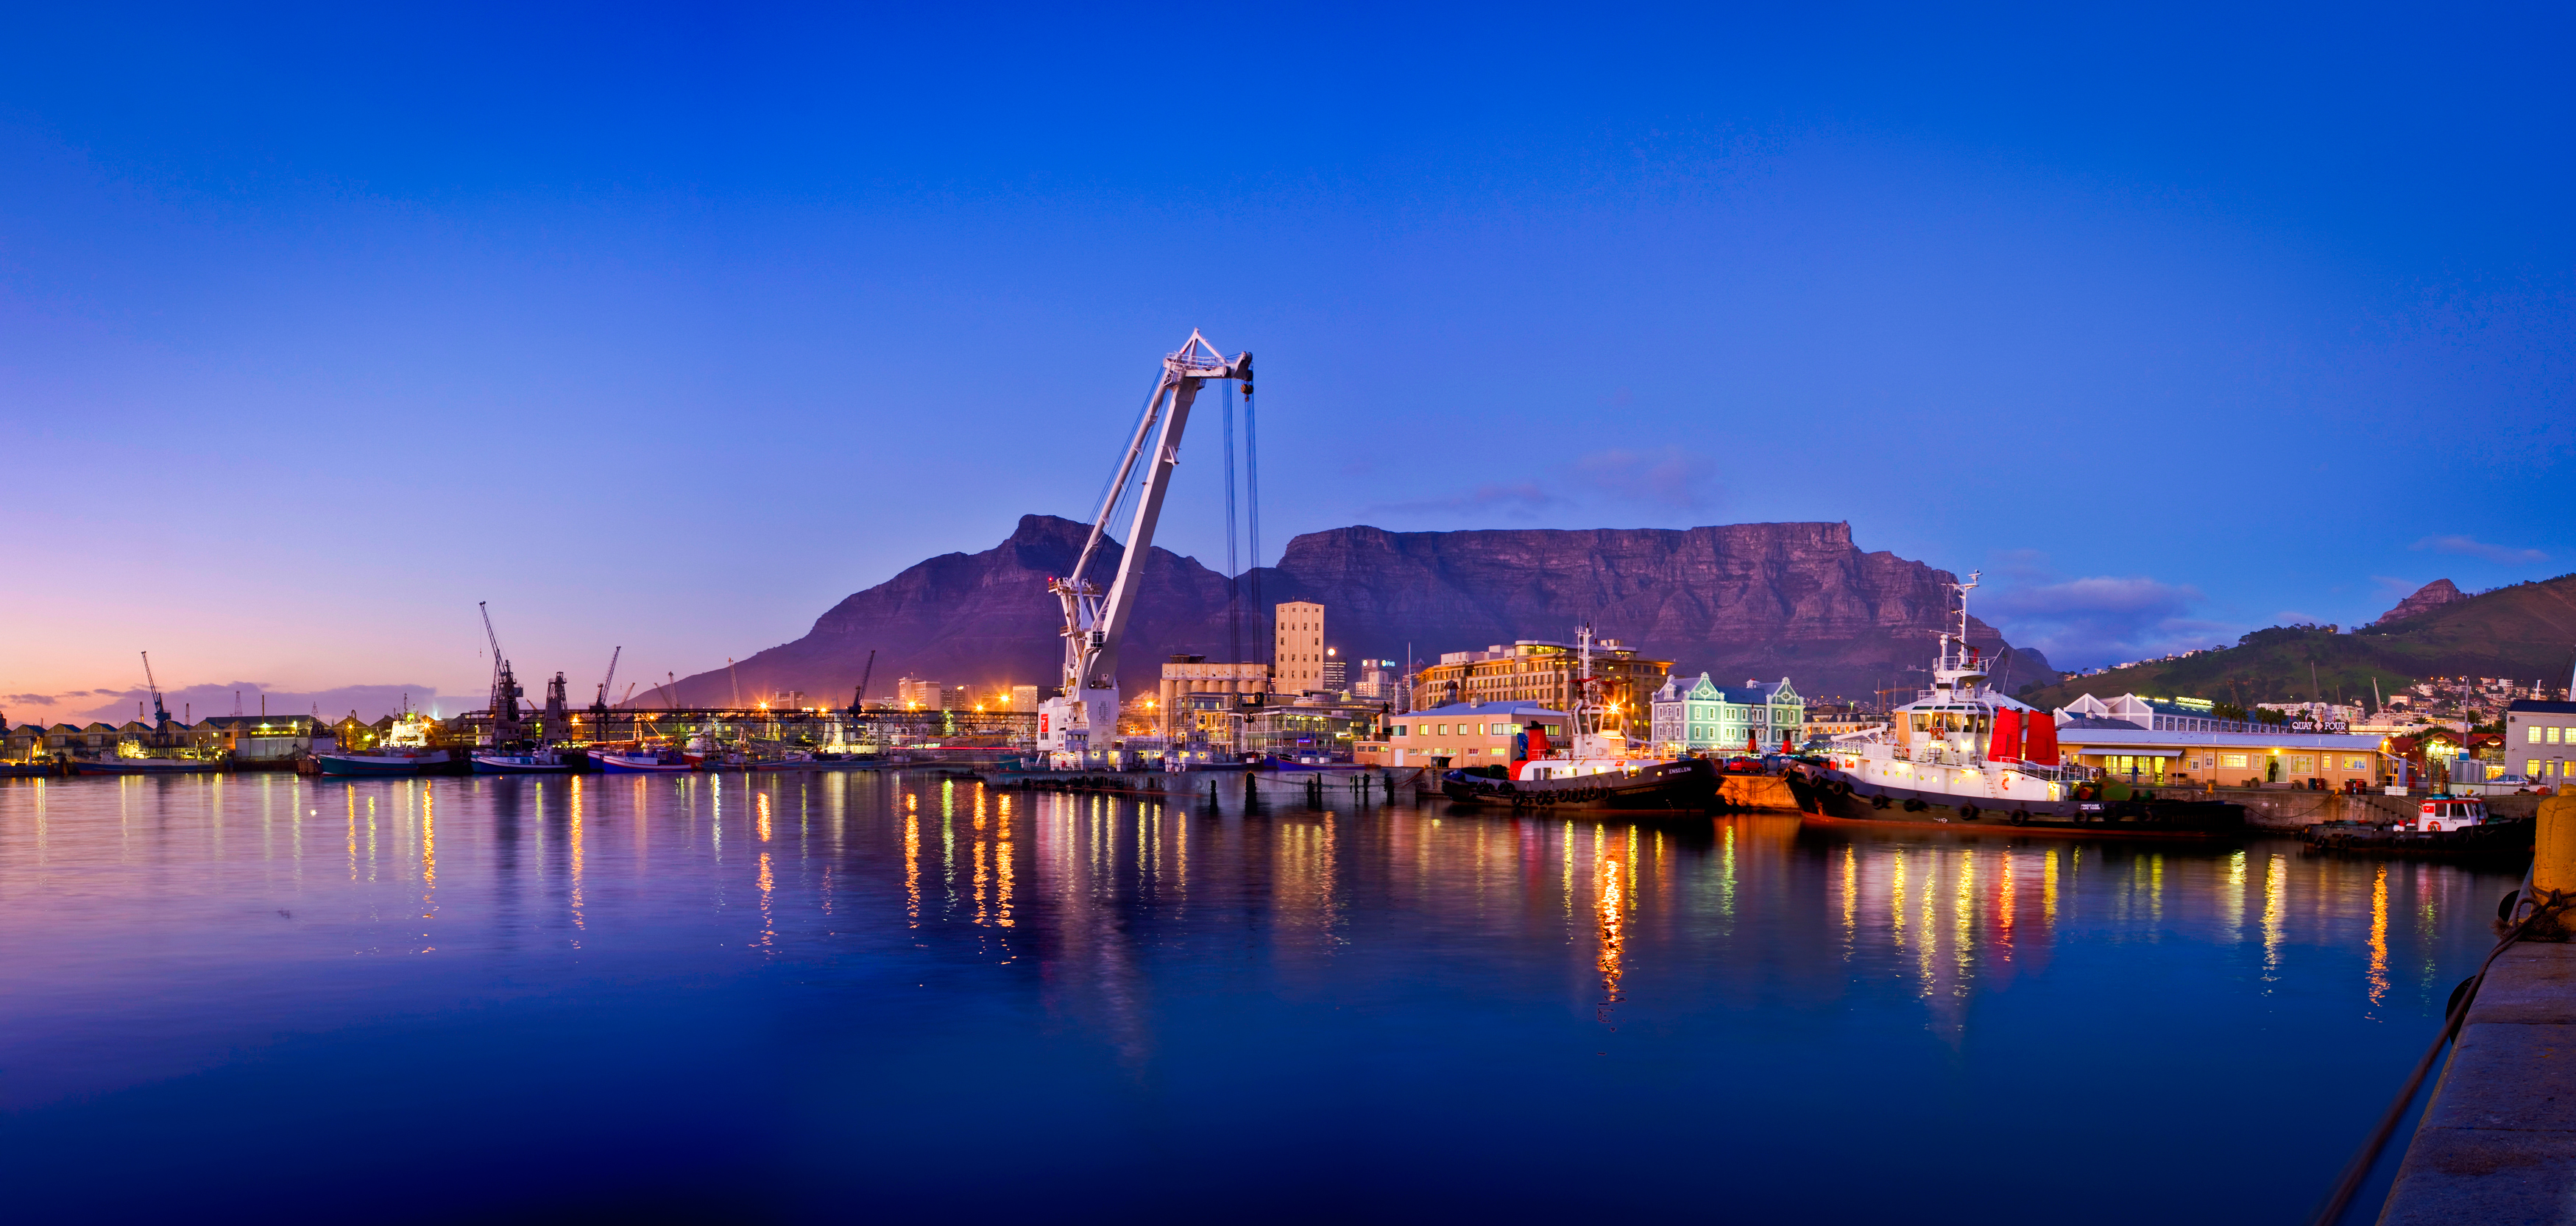 10 things to do in cape town for under r200 spice4life